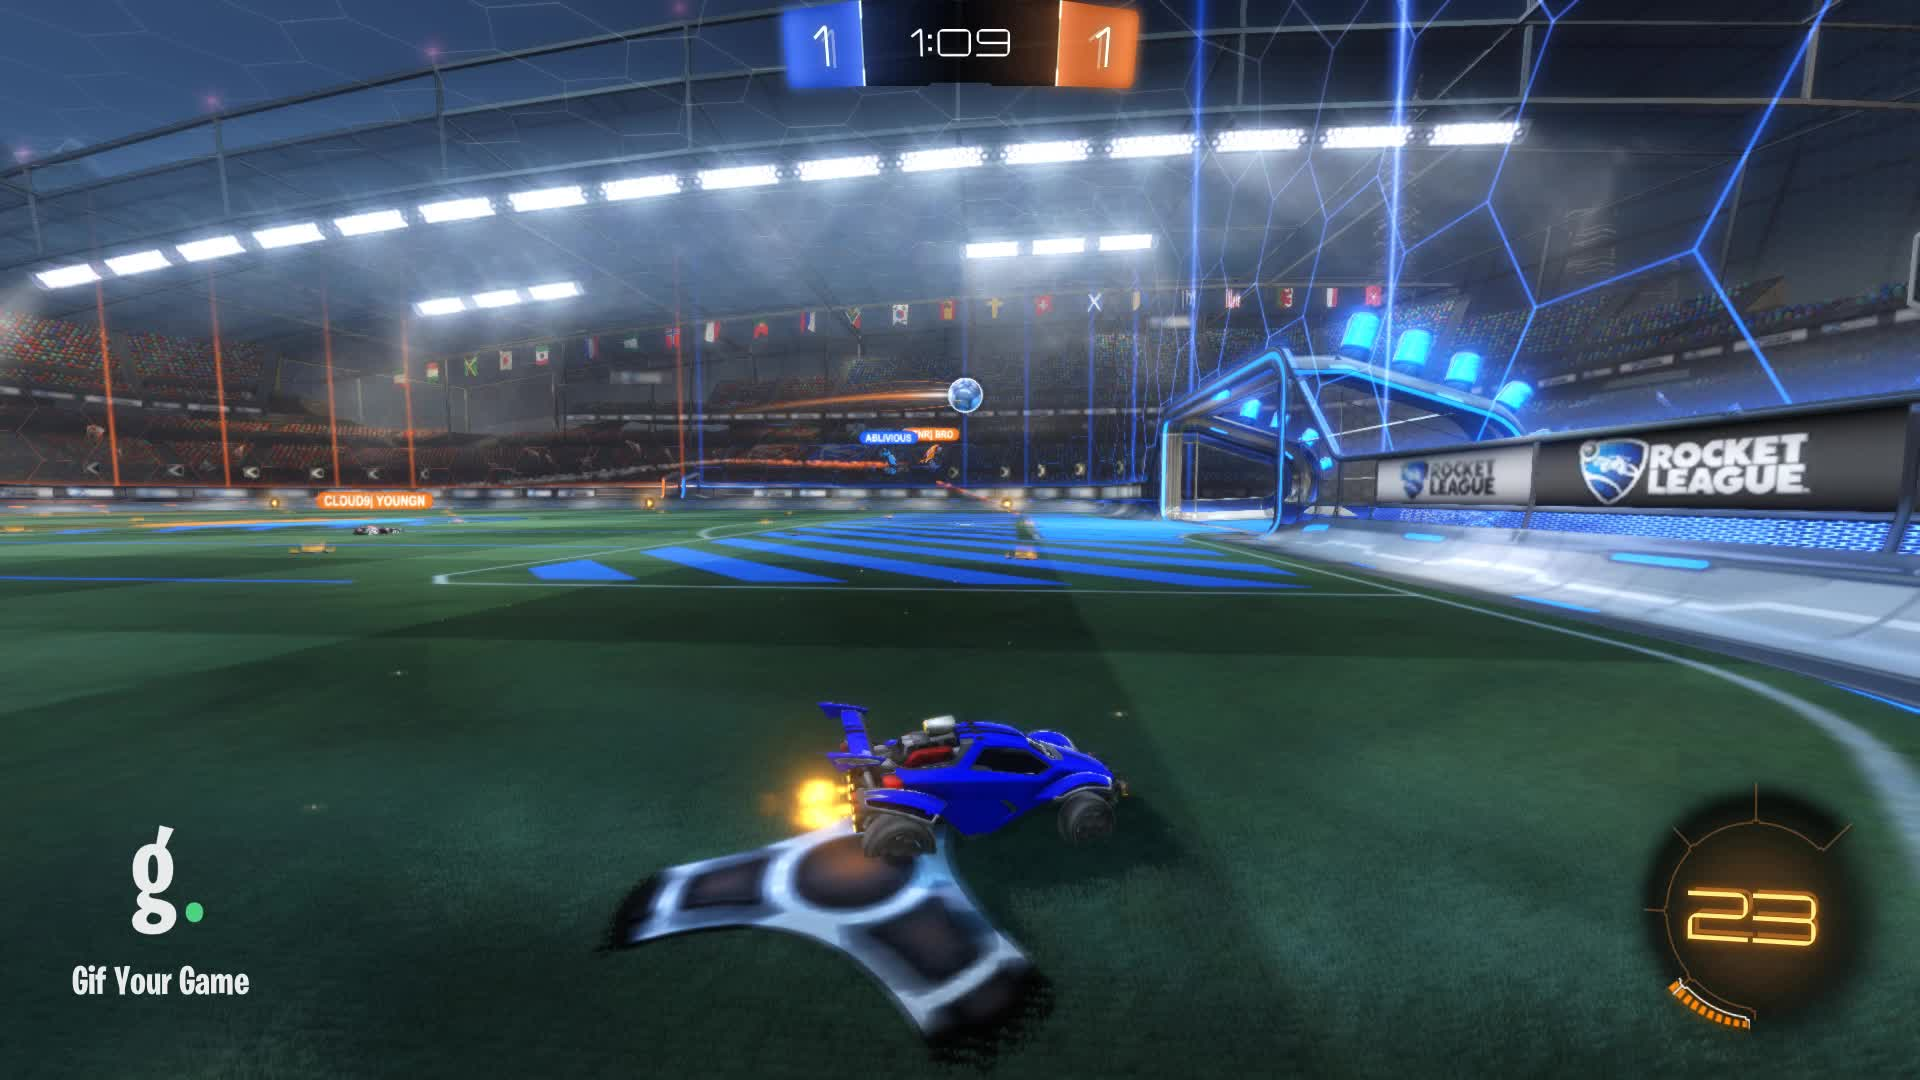 Gif Your Game, GifYourGame, Rocket League, RocketLeague, Twisted, Goal 3: Cloud9| Youngn GIFs